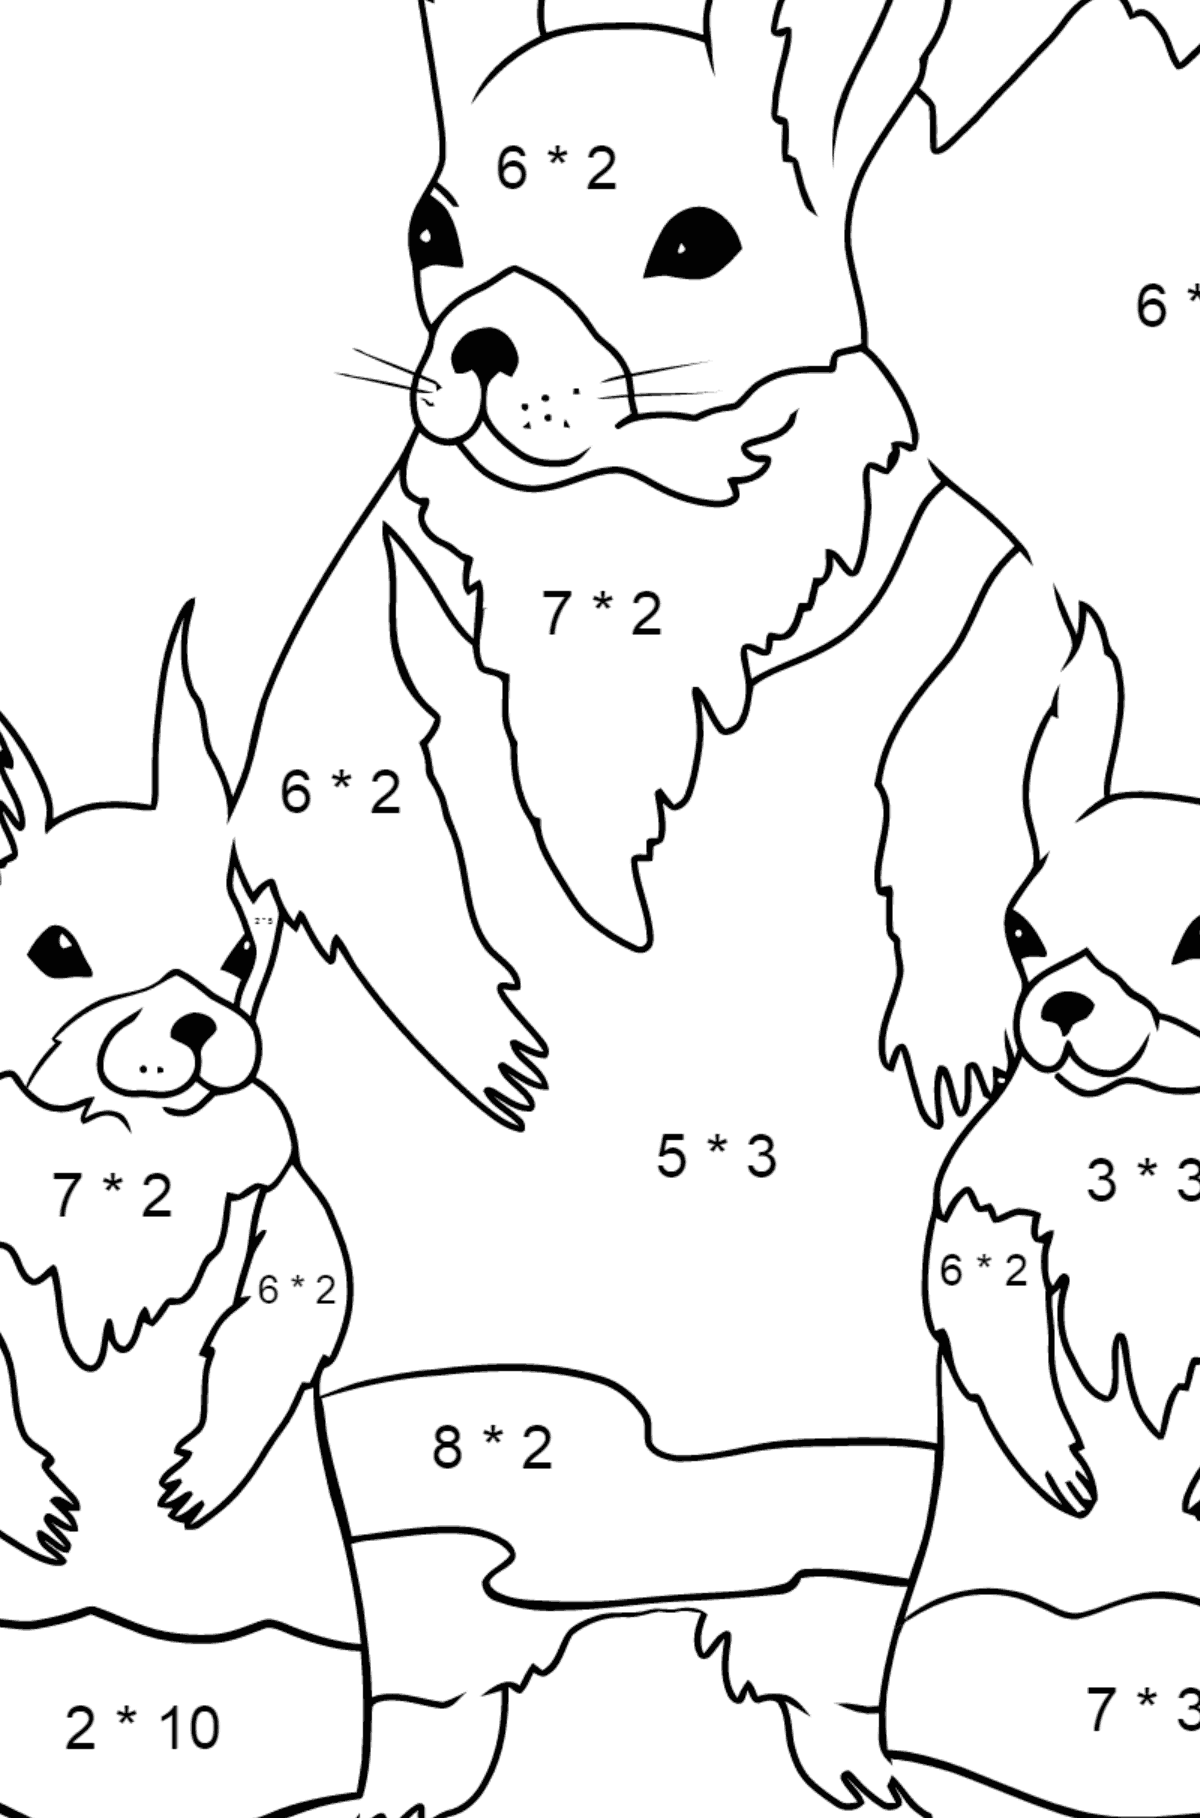 Spring Coloring Page - Squirrels are Preparing to Greet the Sun for Children  - Color by Number Multiplication